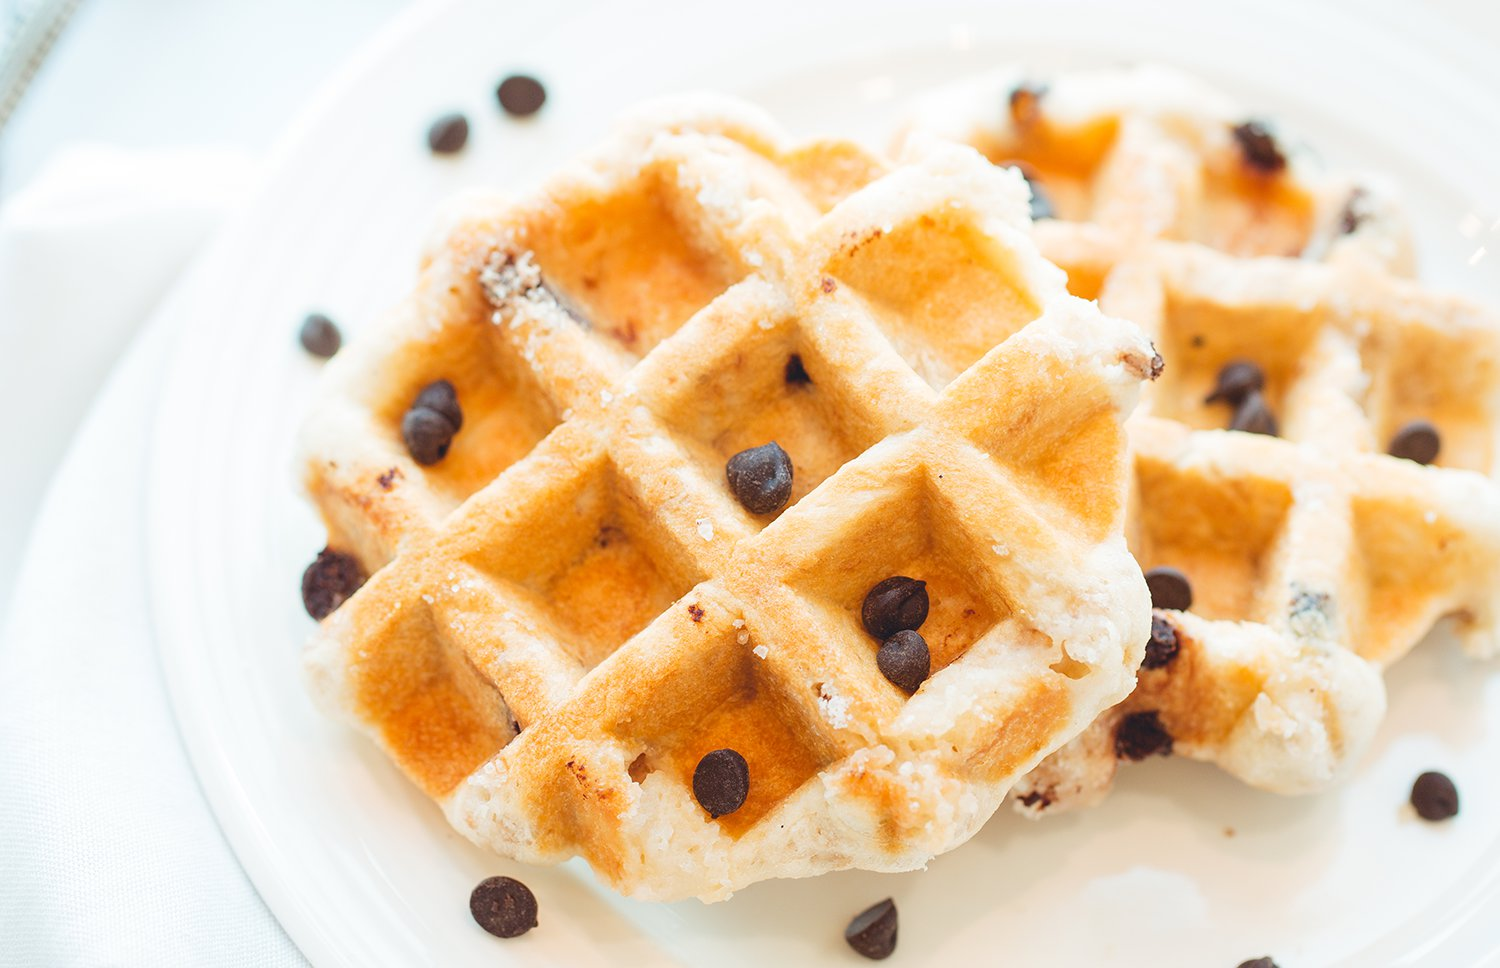 Choco Chip Waffles - Ready to Eat pack of 4